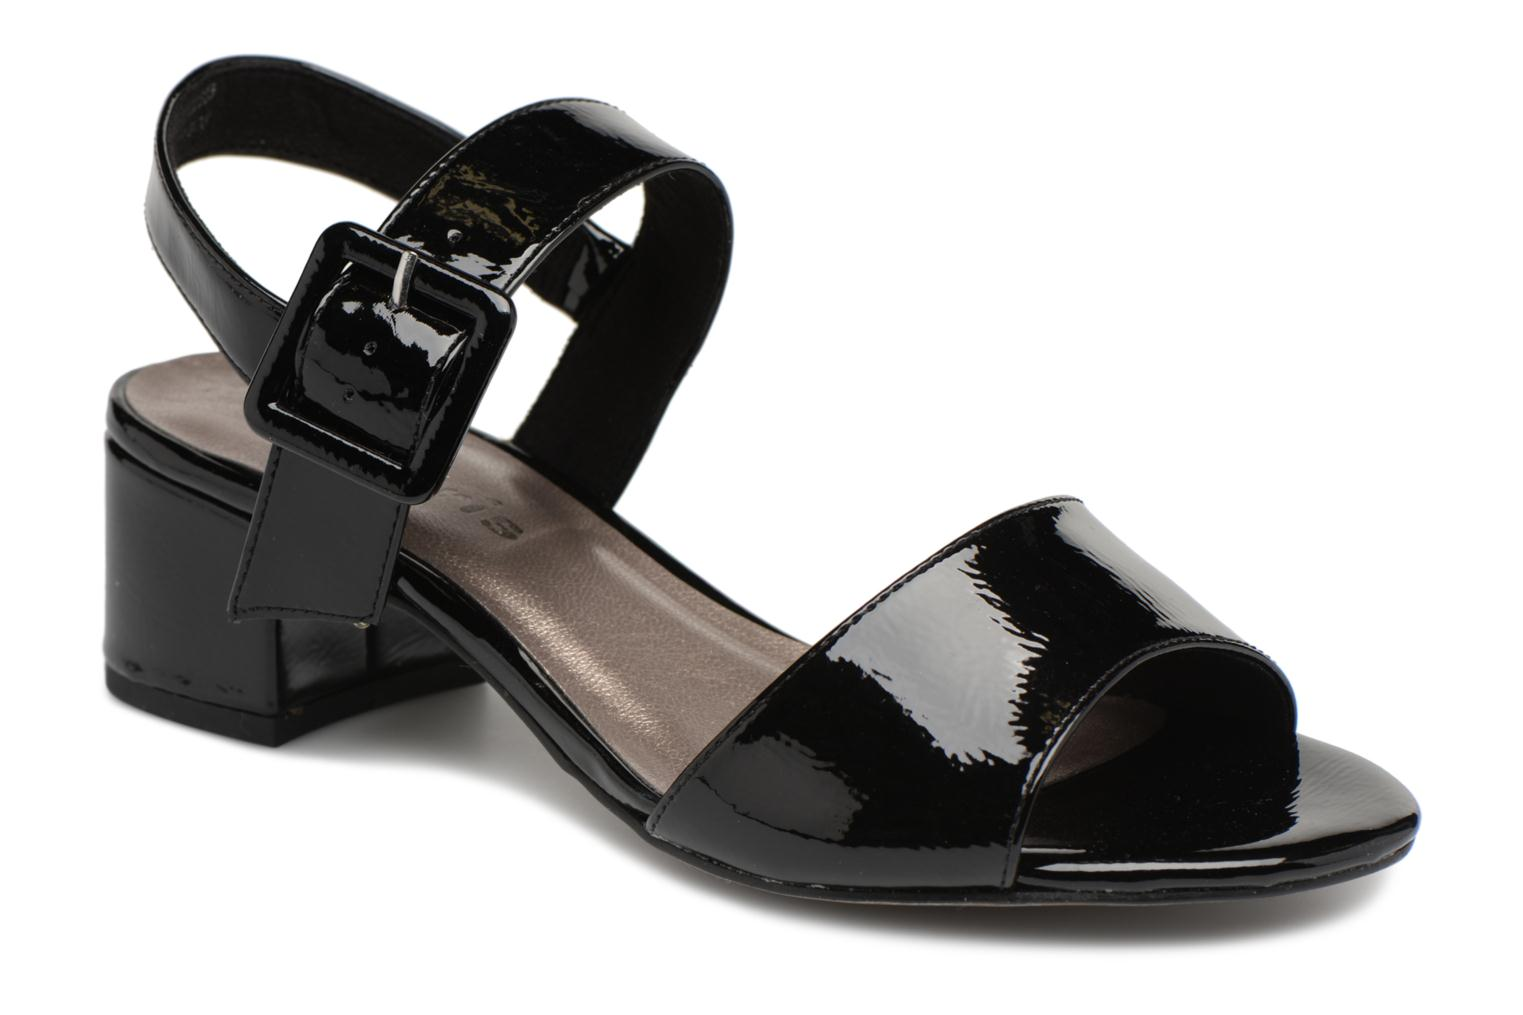 Marques Chaussure femme Tamaris femme Agave 2 Vernis Black